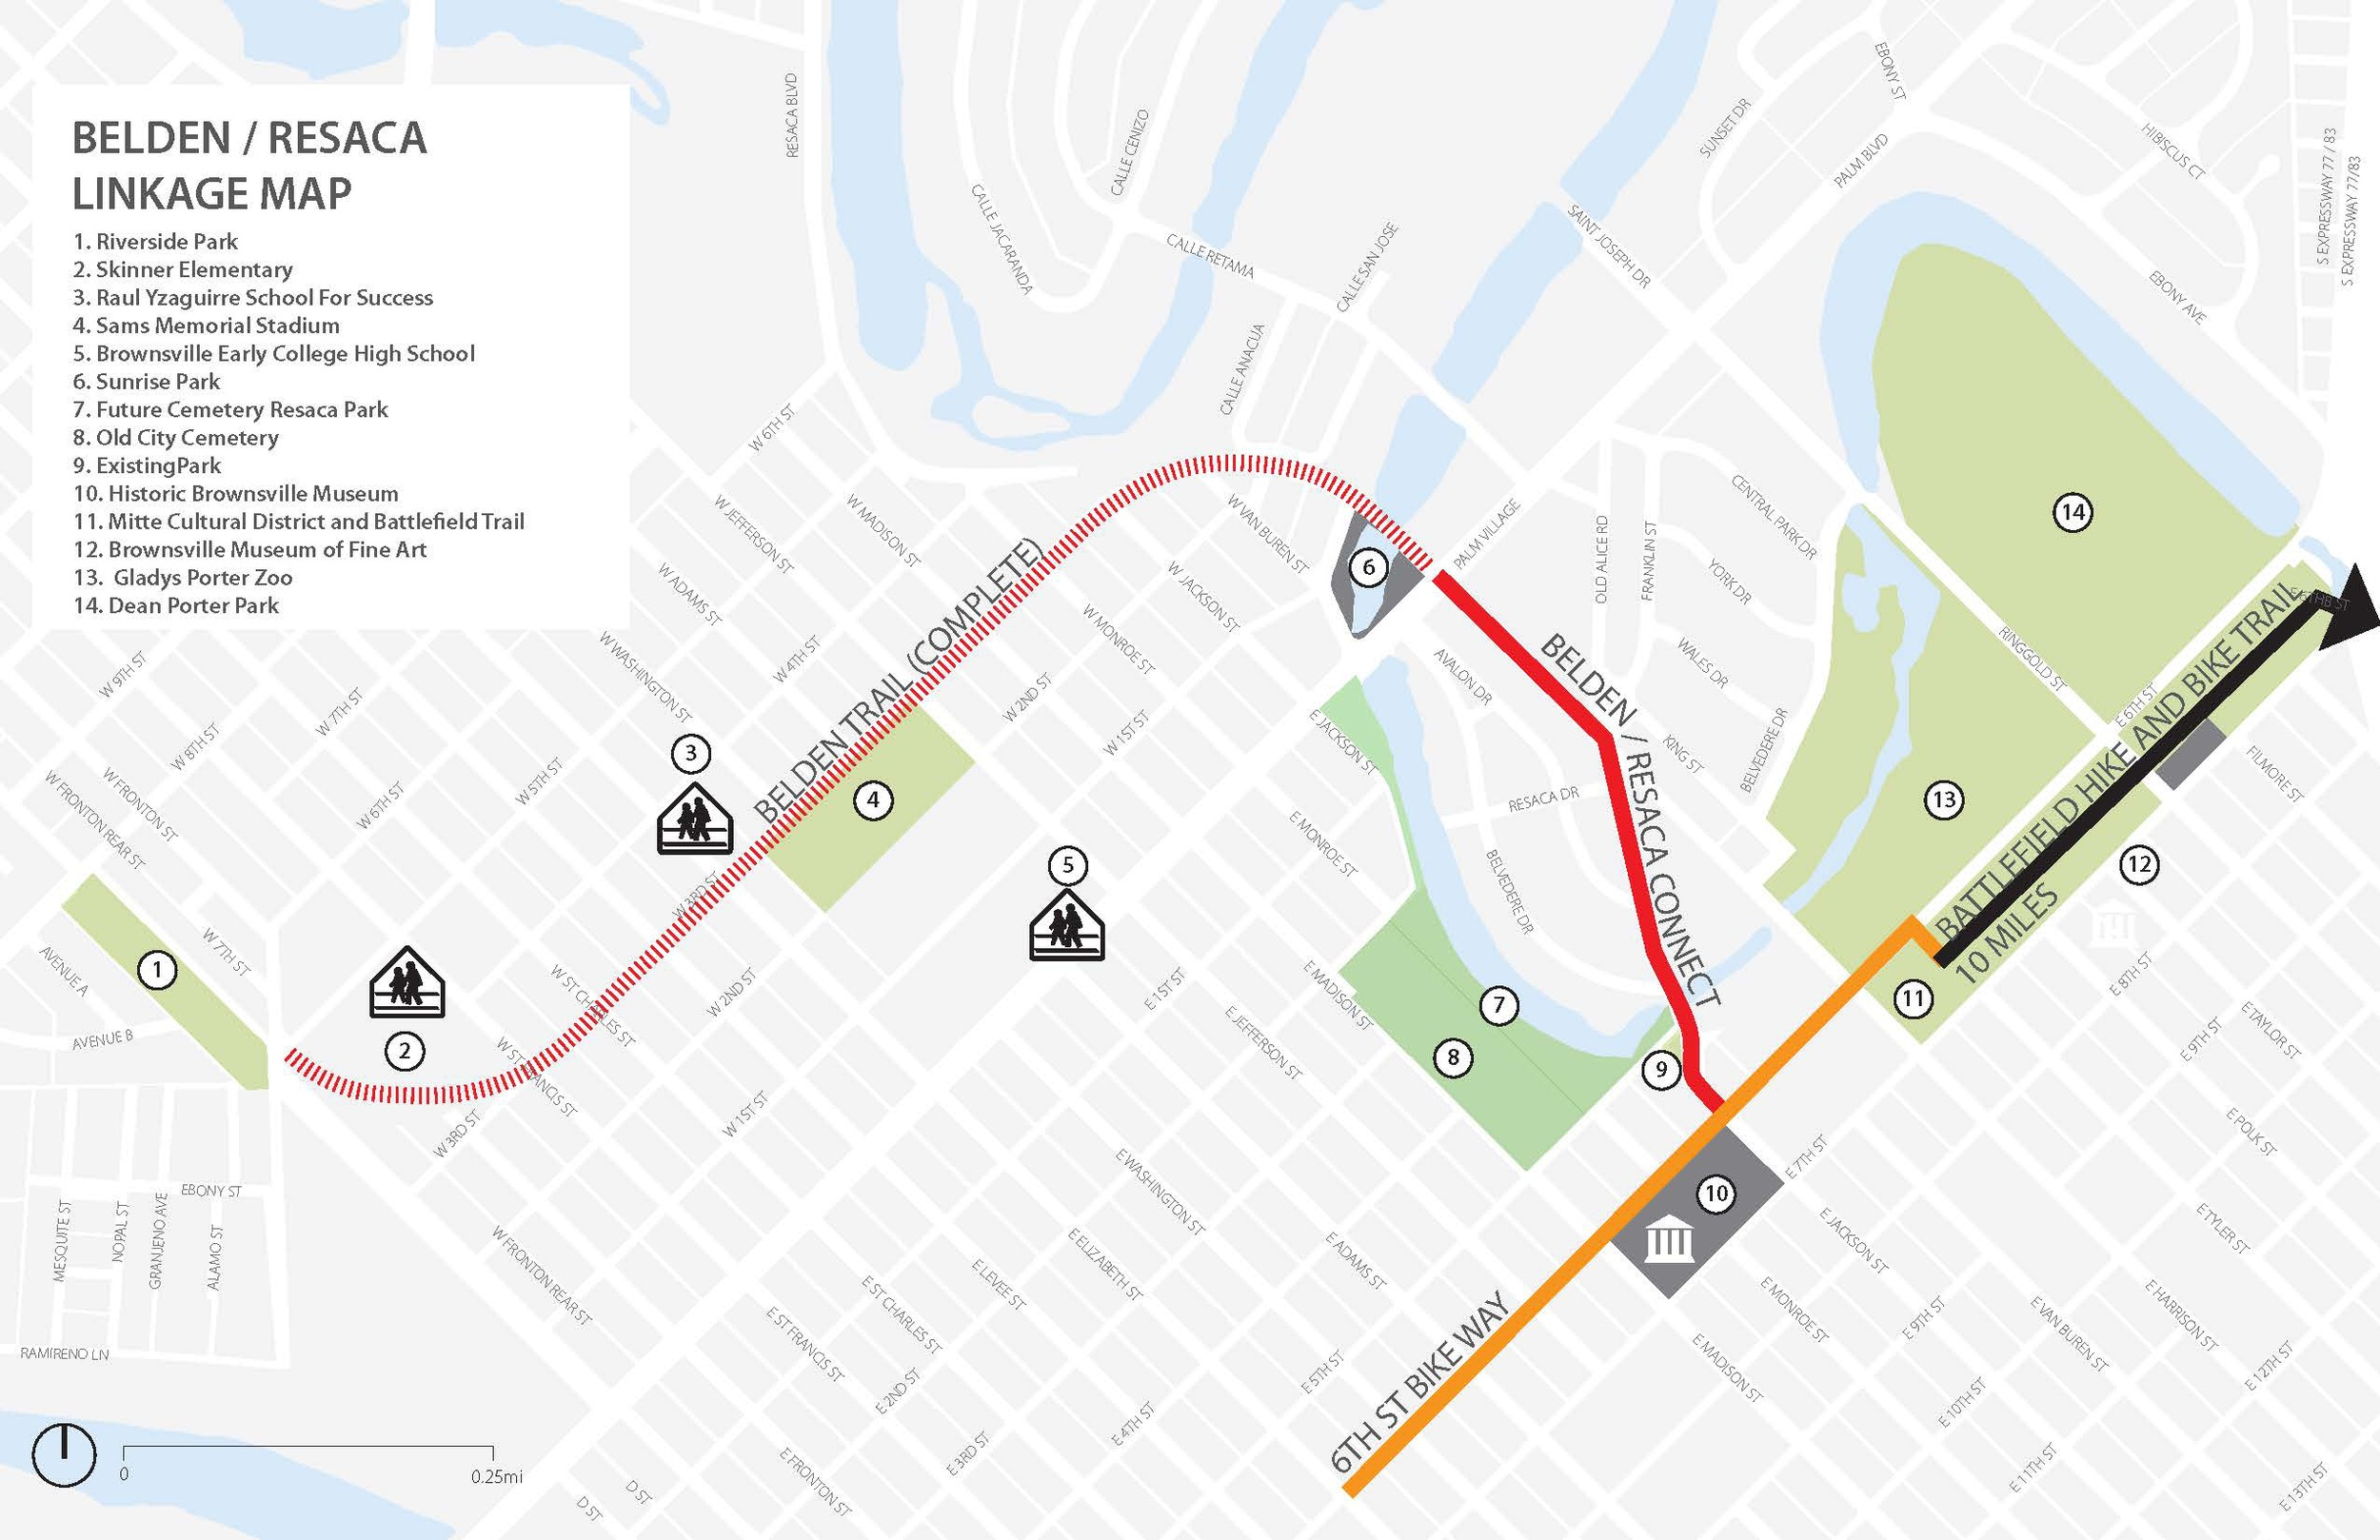 The project proposes extending the Belden Trail towards 6th St in Downtown Brownsville to connect to the Mitte Cultural District, museums, and the exiting Historic Battlefield Trail.